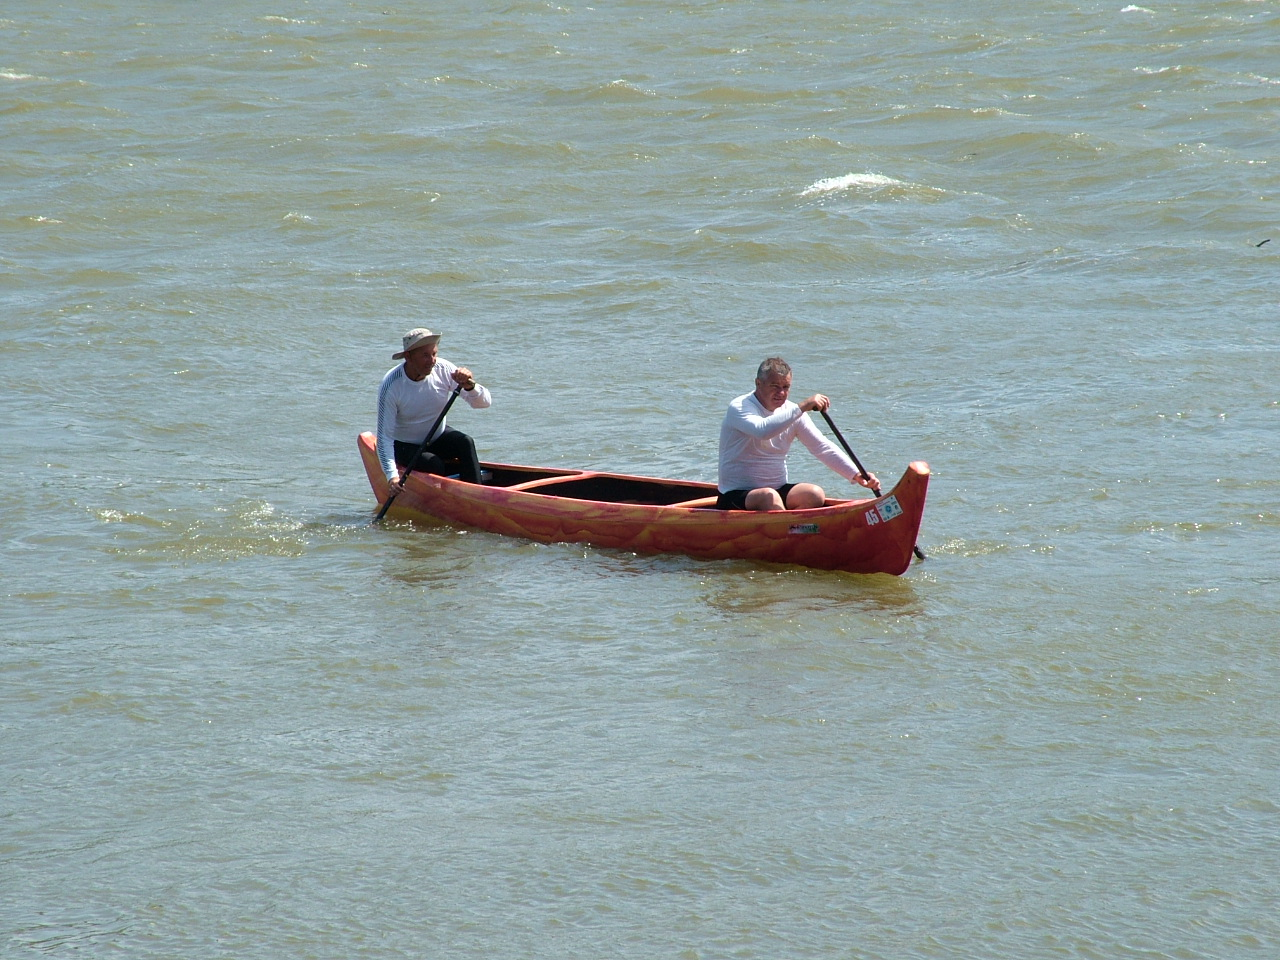 Caribbean Indian canoe for 2-3 persons